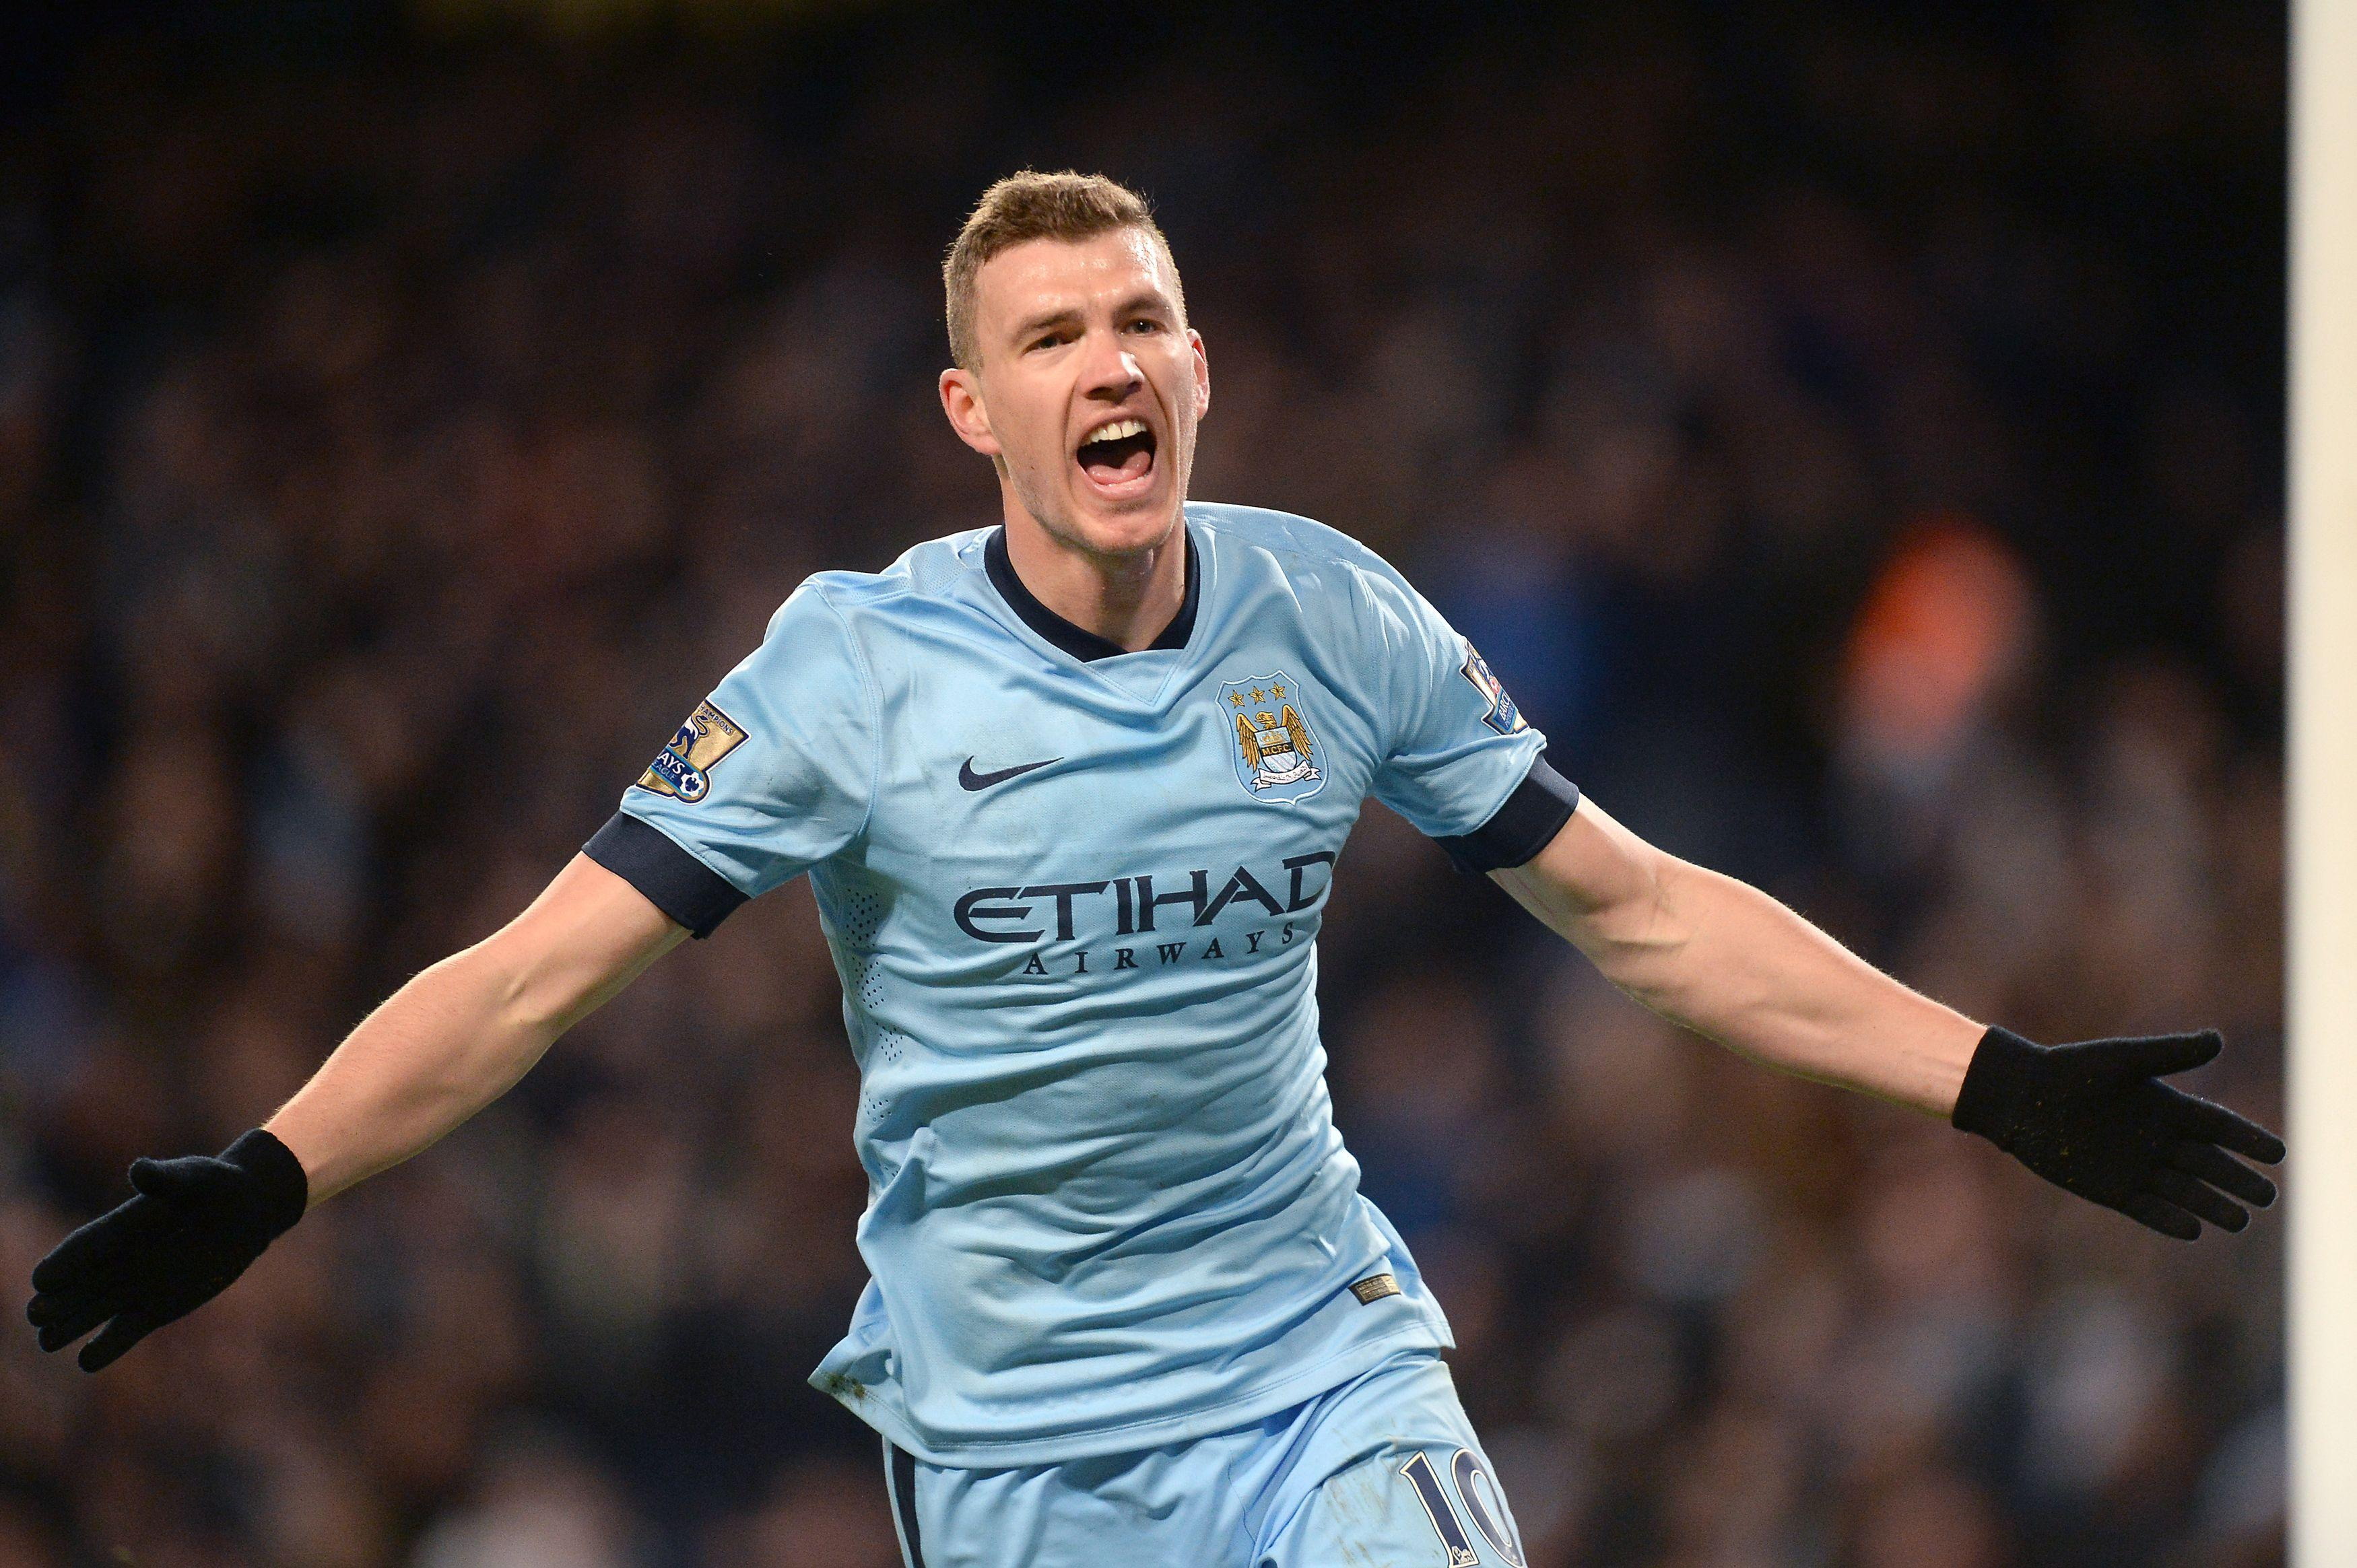 Dzeko enjoyed a spell in the Premier League with Manchester City